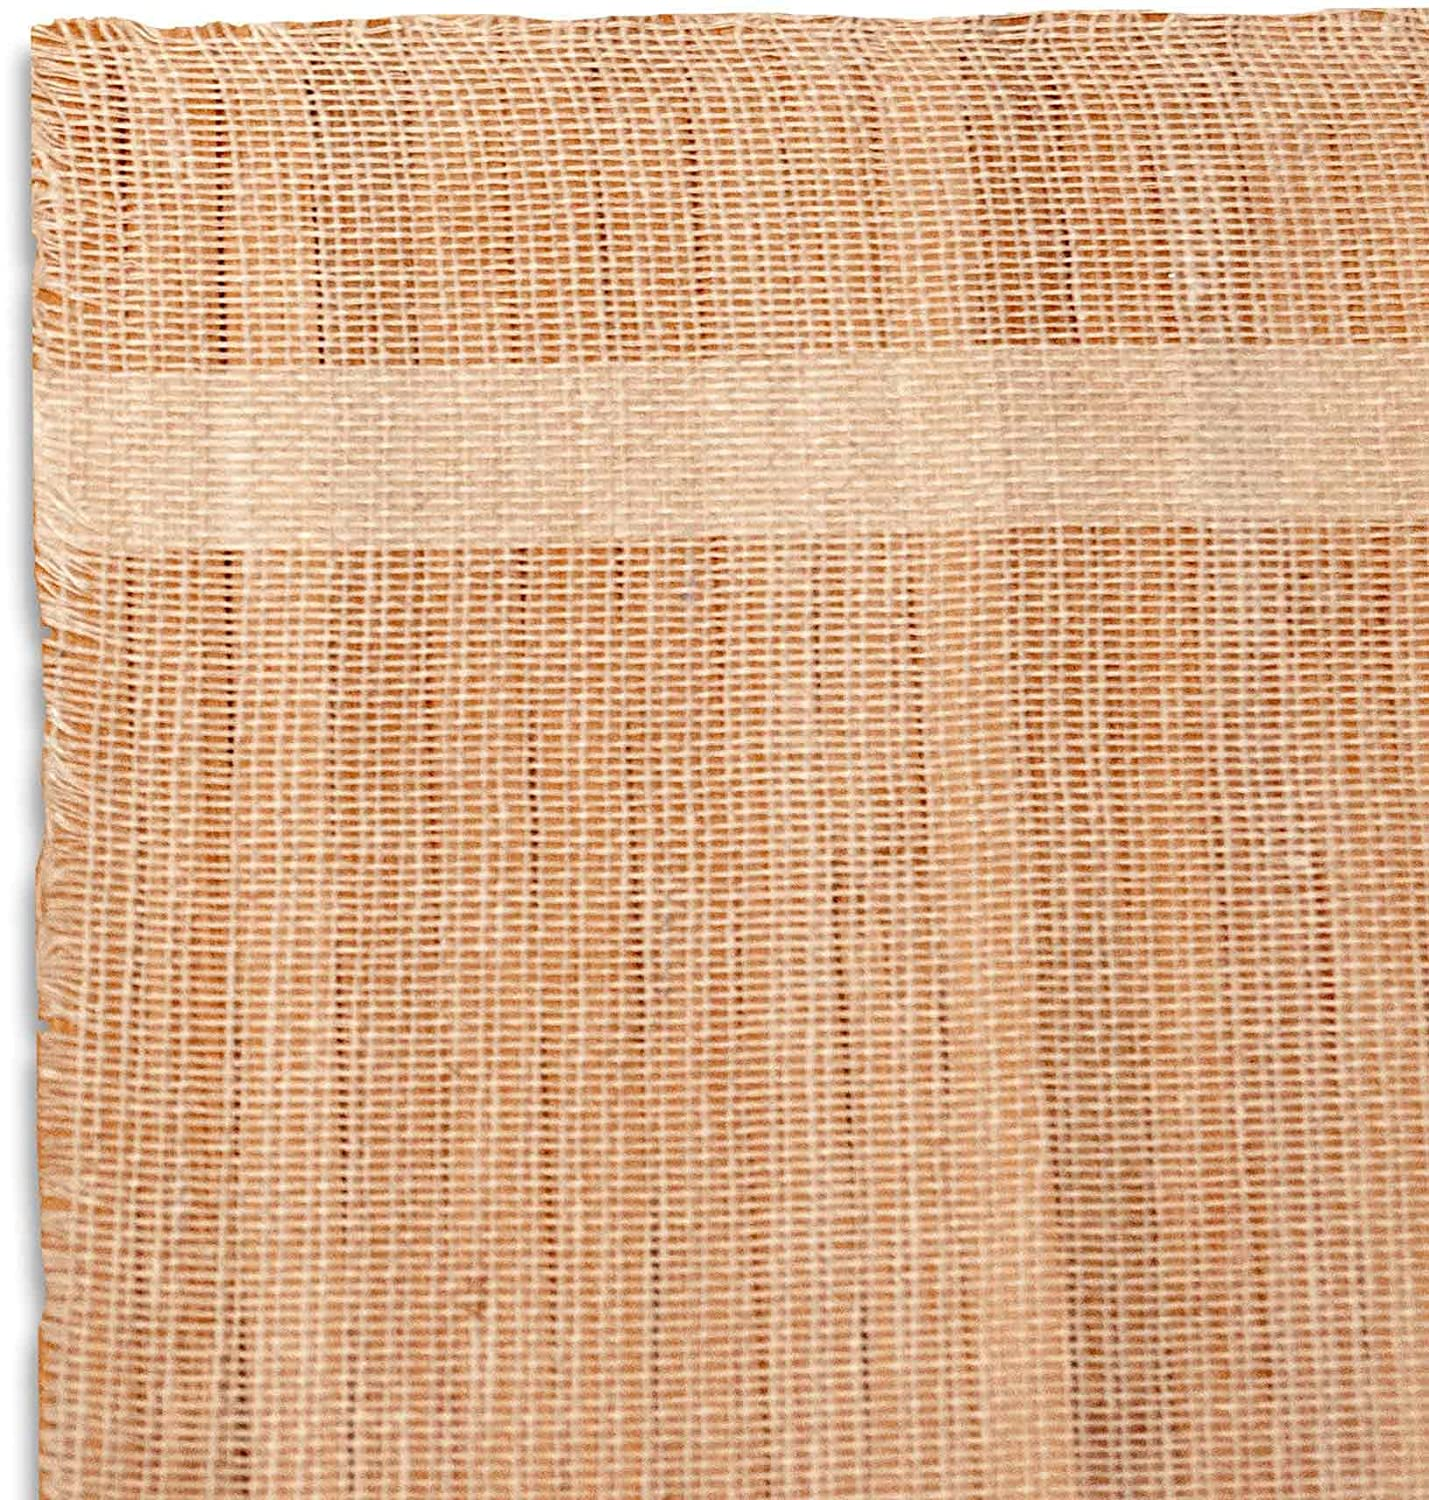 Boedika 9-84010 Tambour Bamboo Wall Covering, 4-Feet by 8-Feet ...